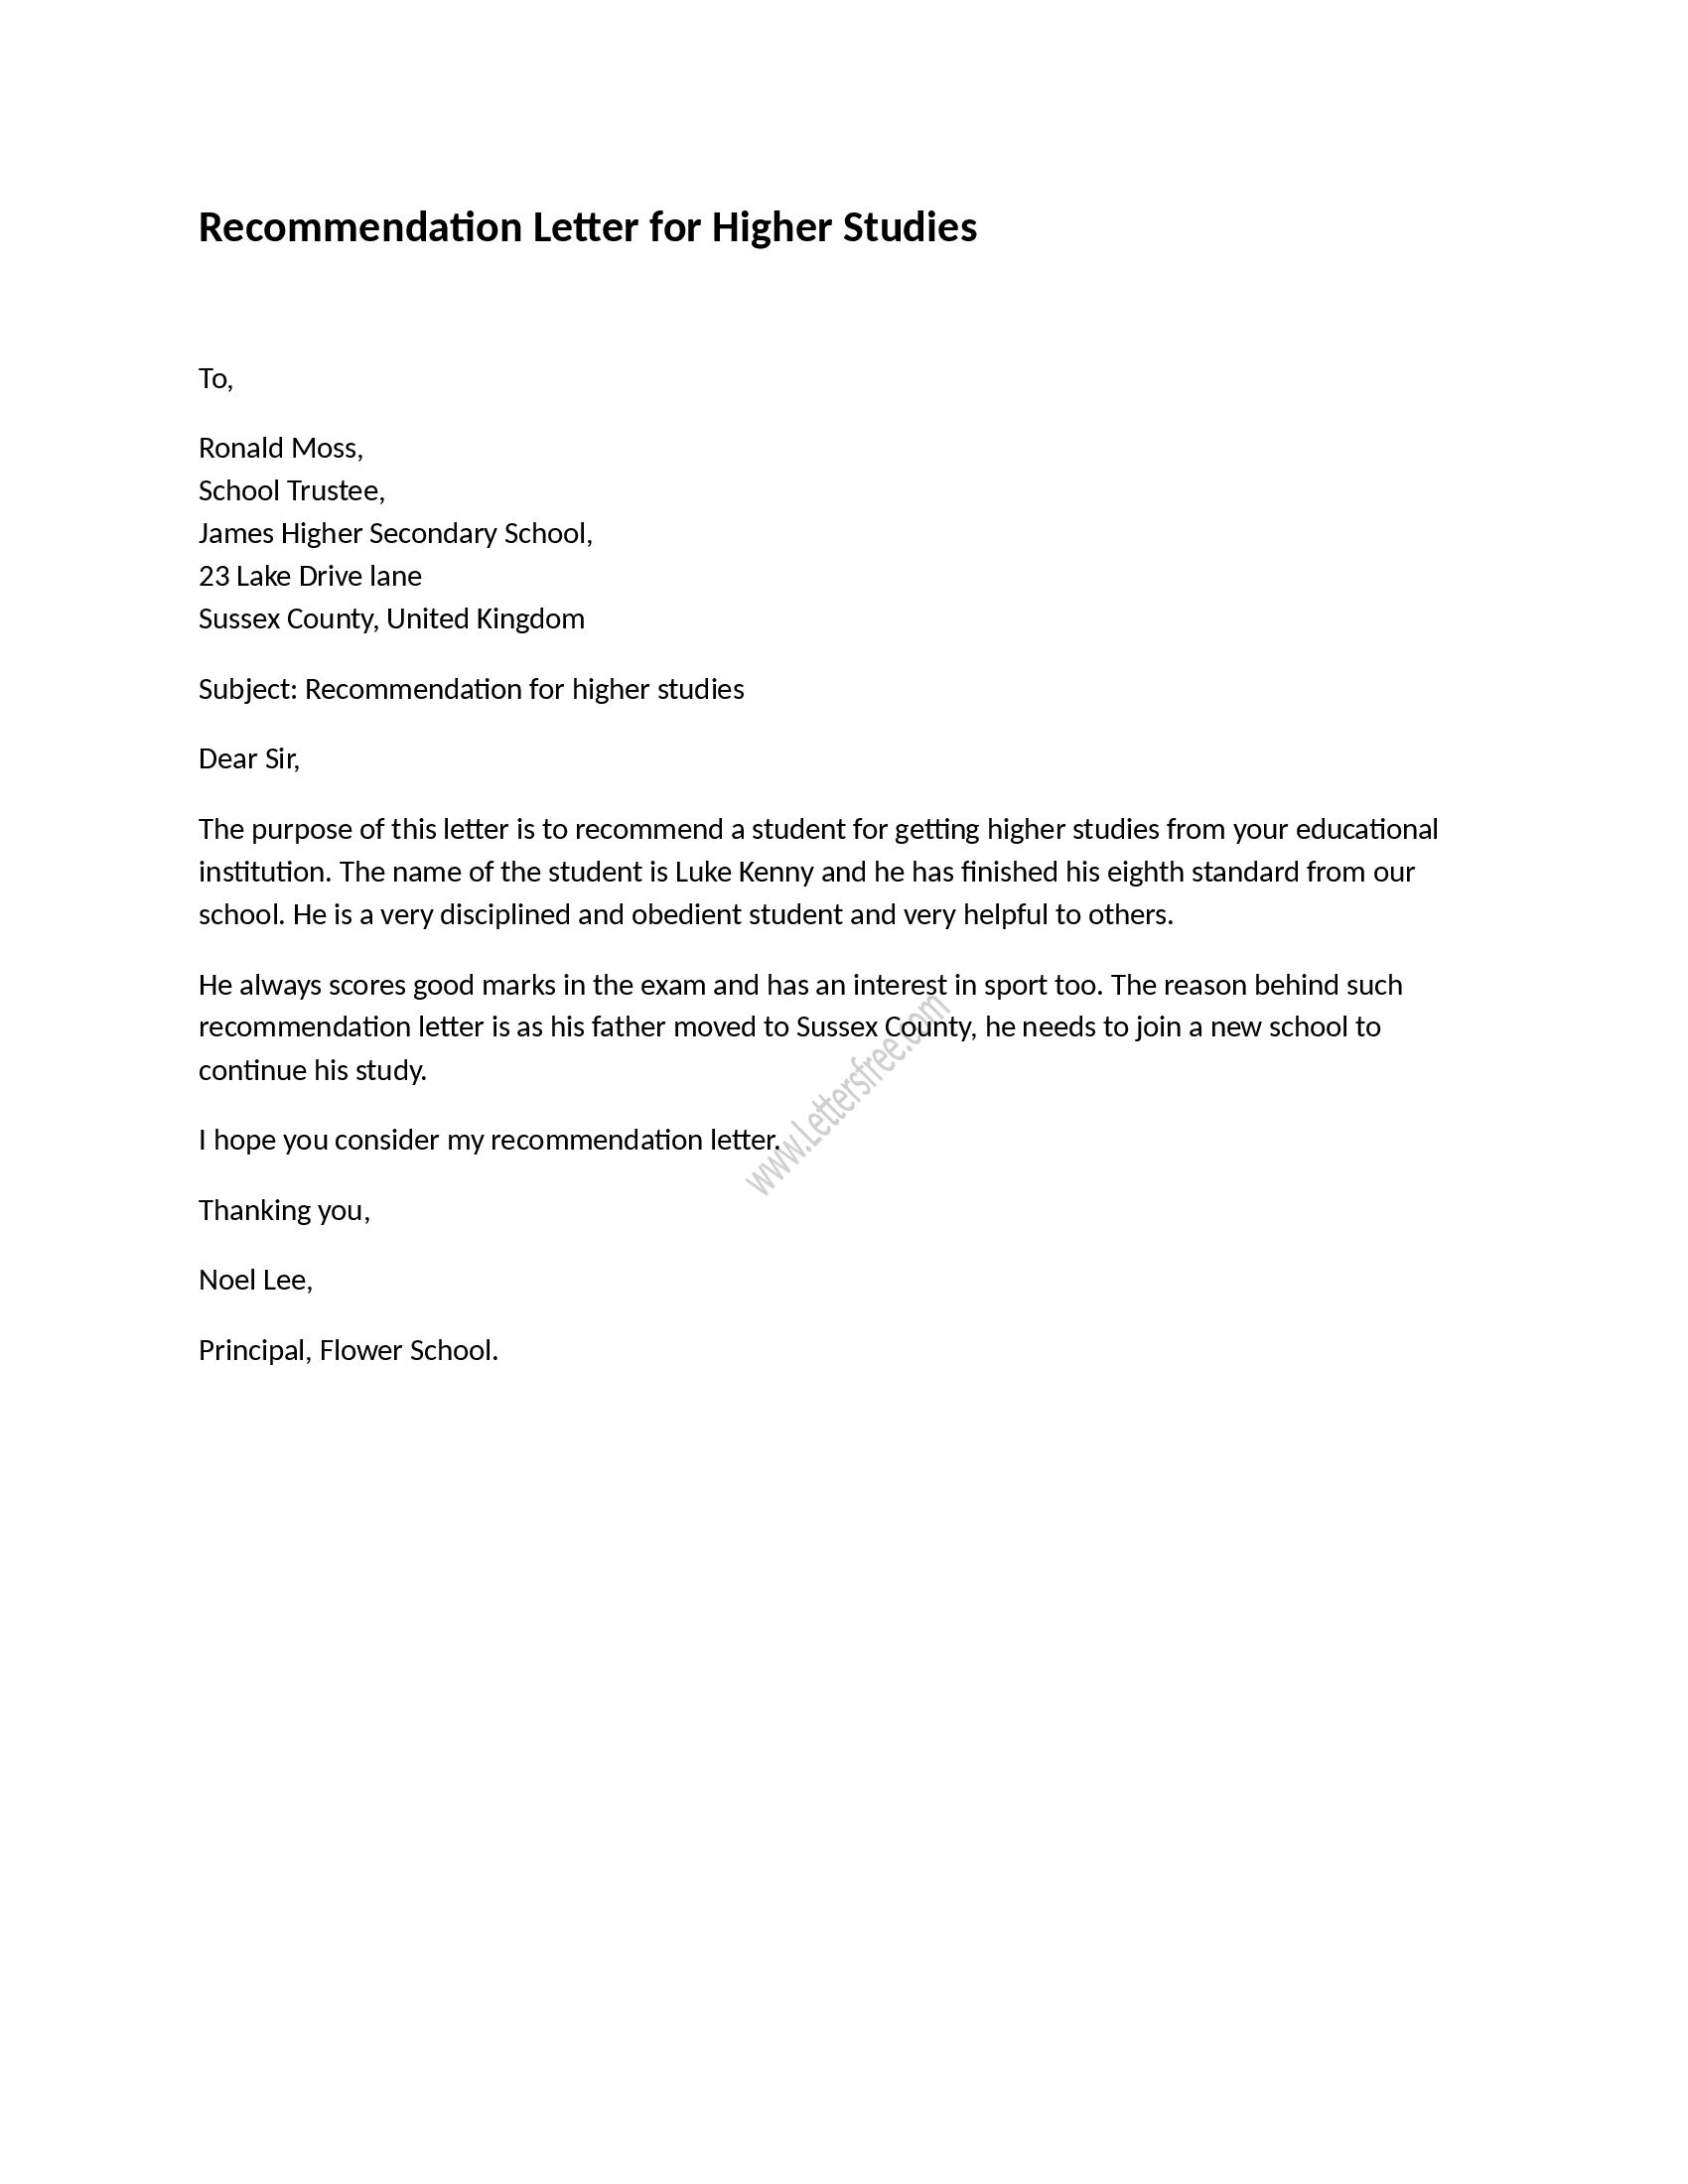 Sample Recommendation Letter For Higher Studies Is Written To